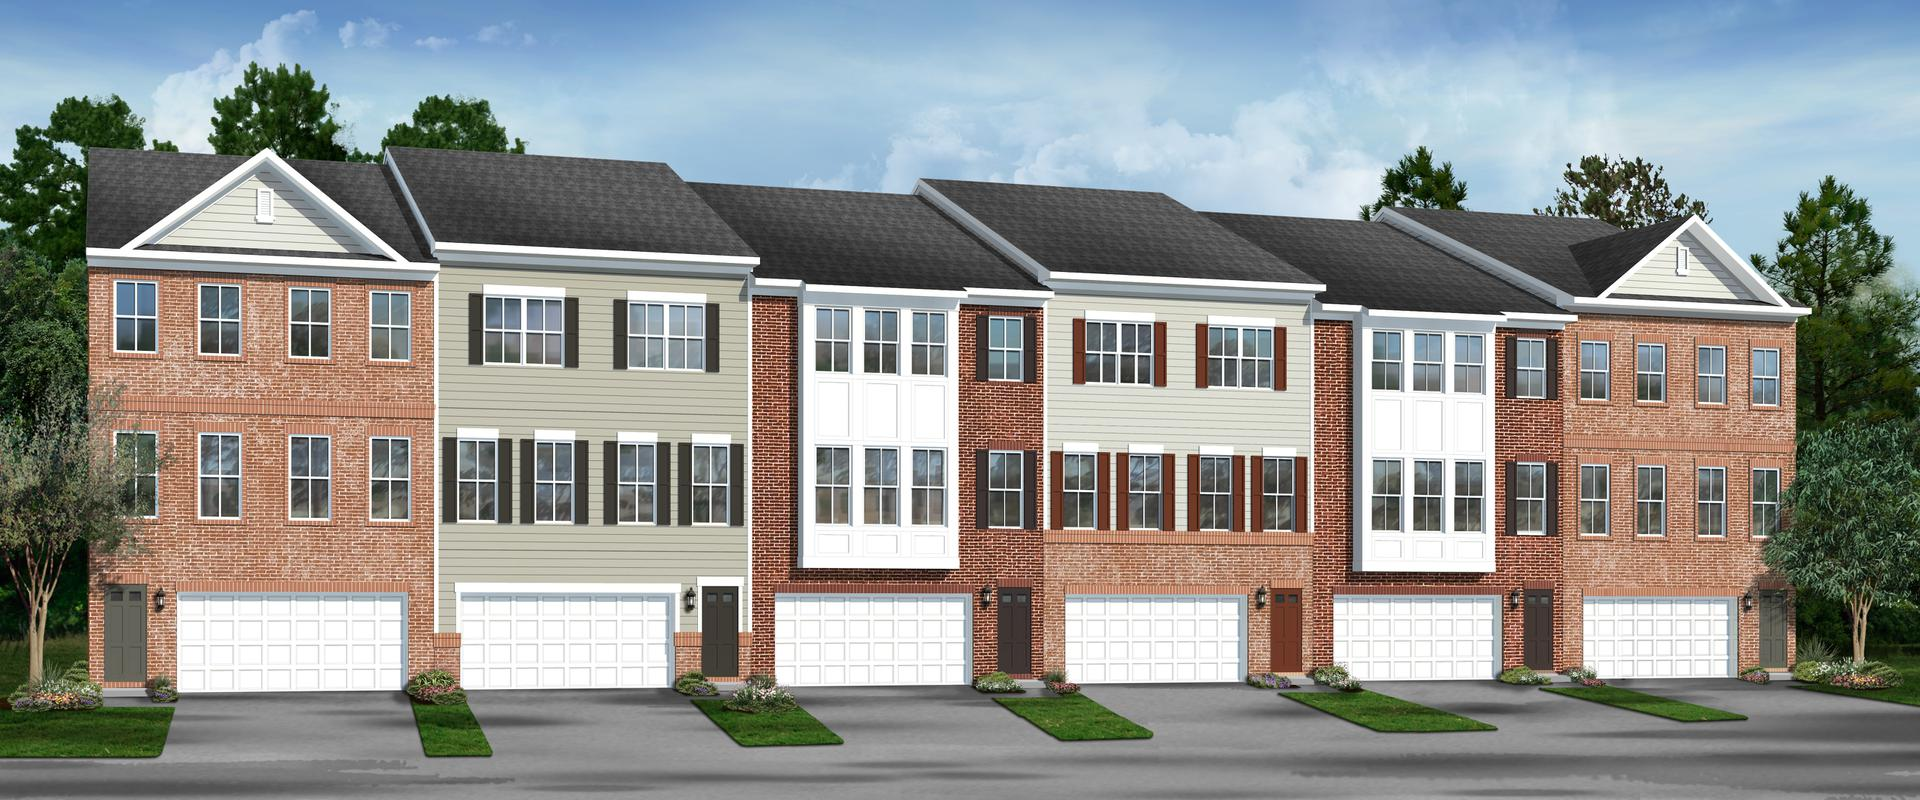 Amber Ridge New Homes in Bowie MD